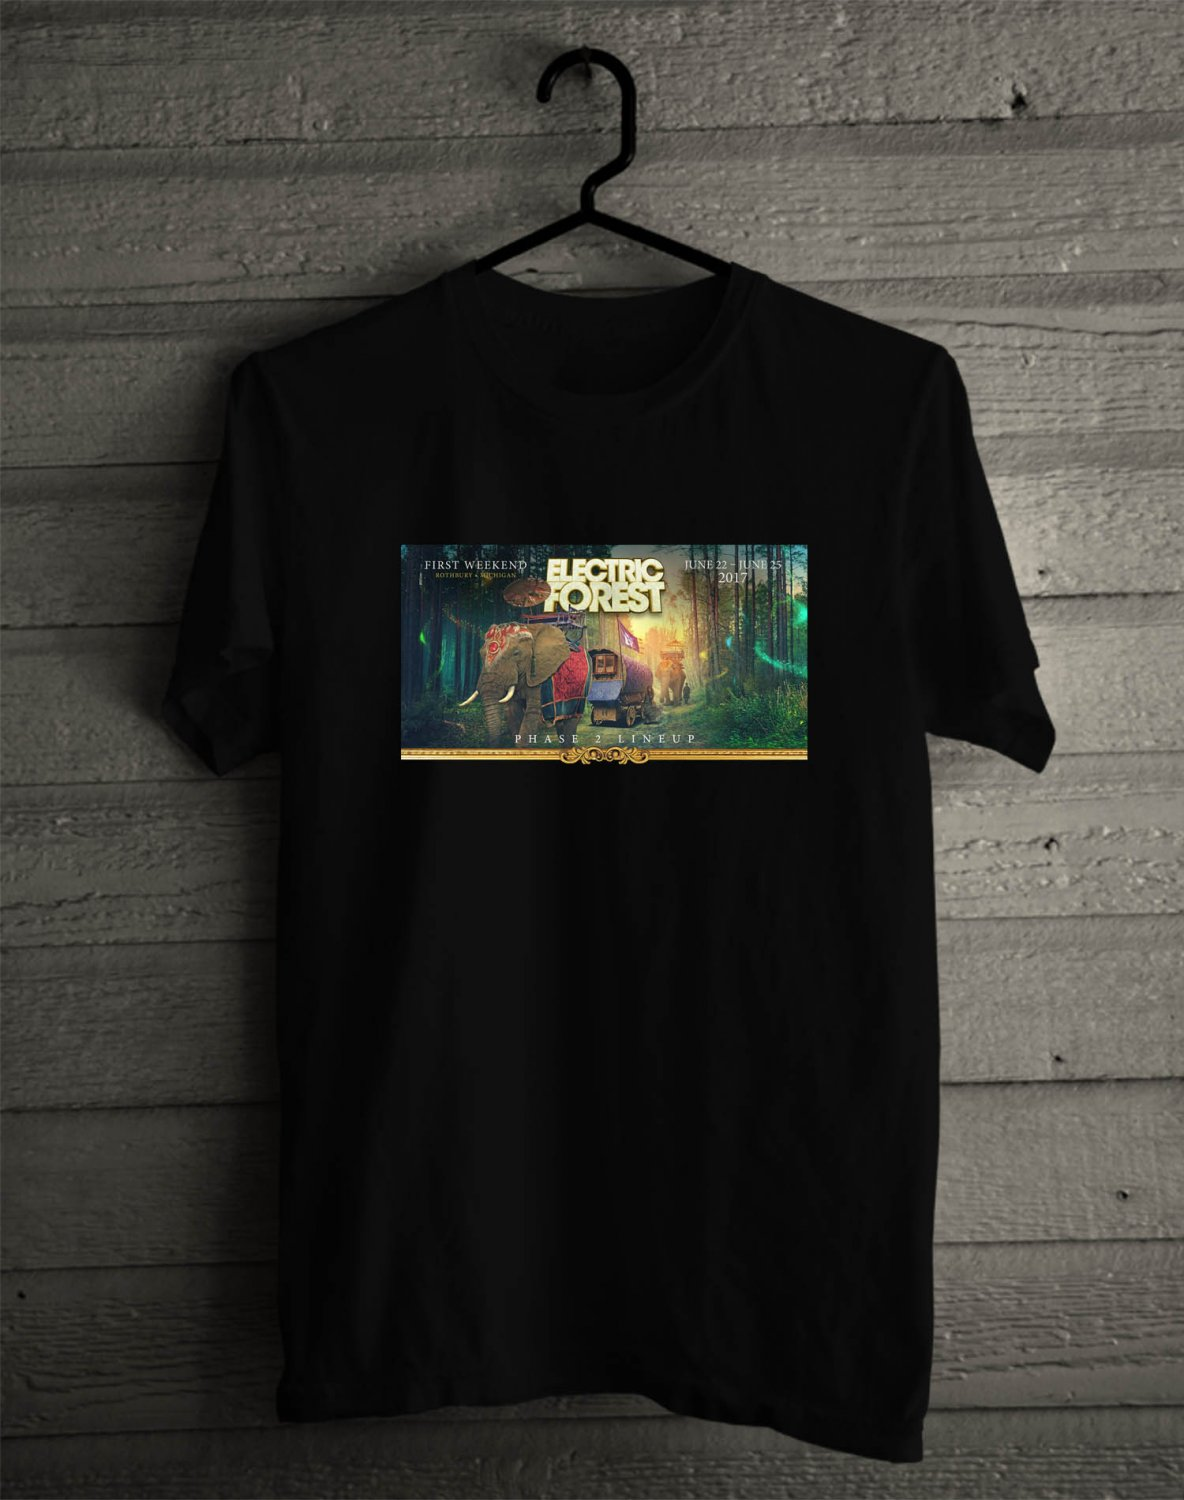 Electric Daisy Carnival Las Vegas 2017 Black Tee's Front Side by Complexart z3